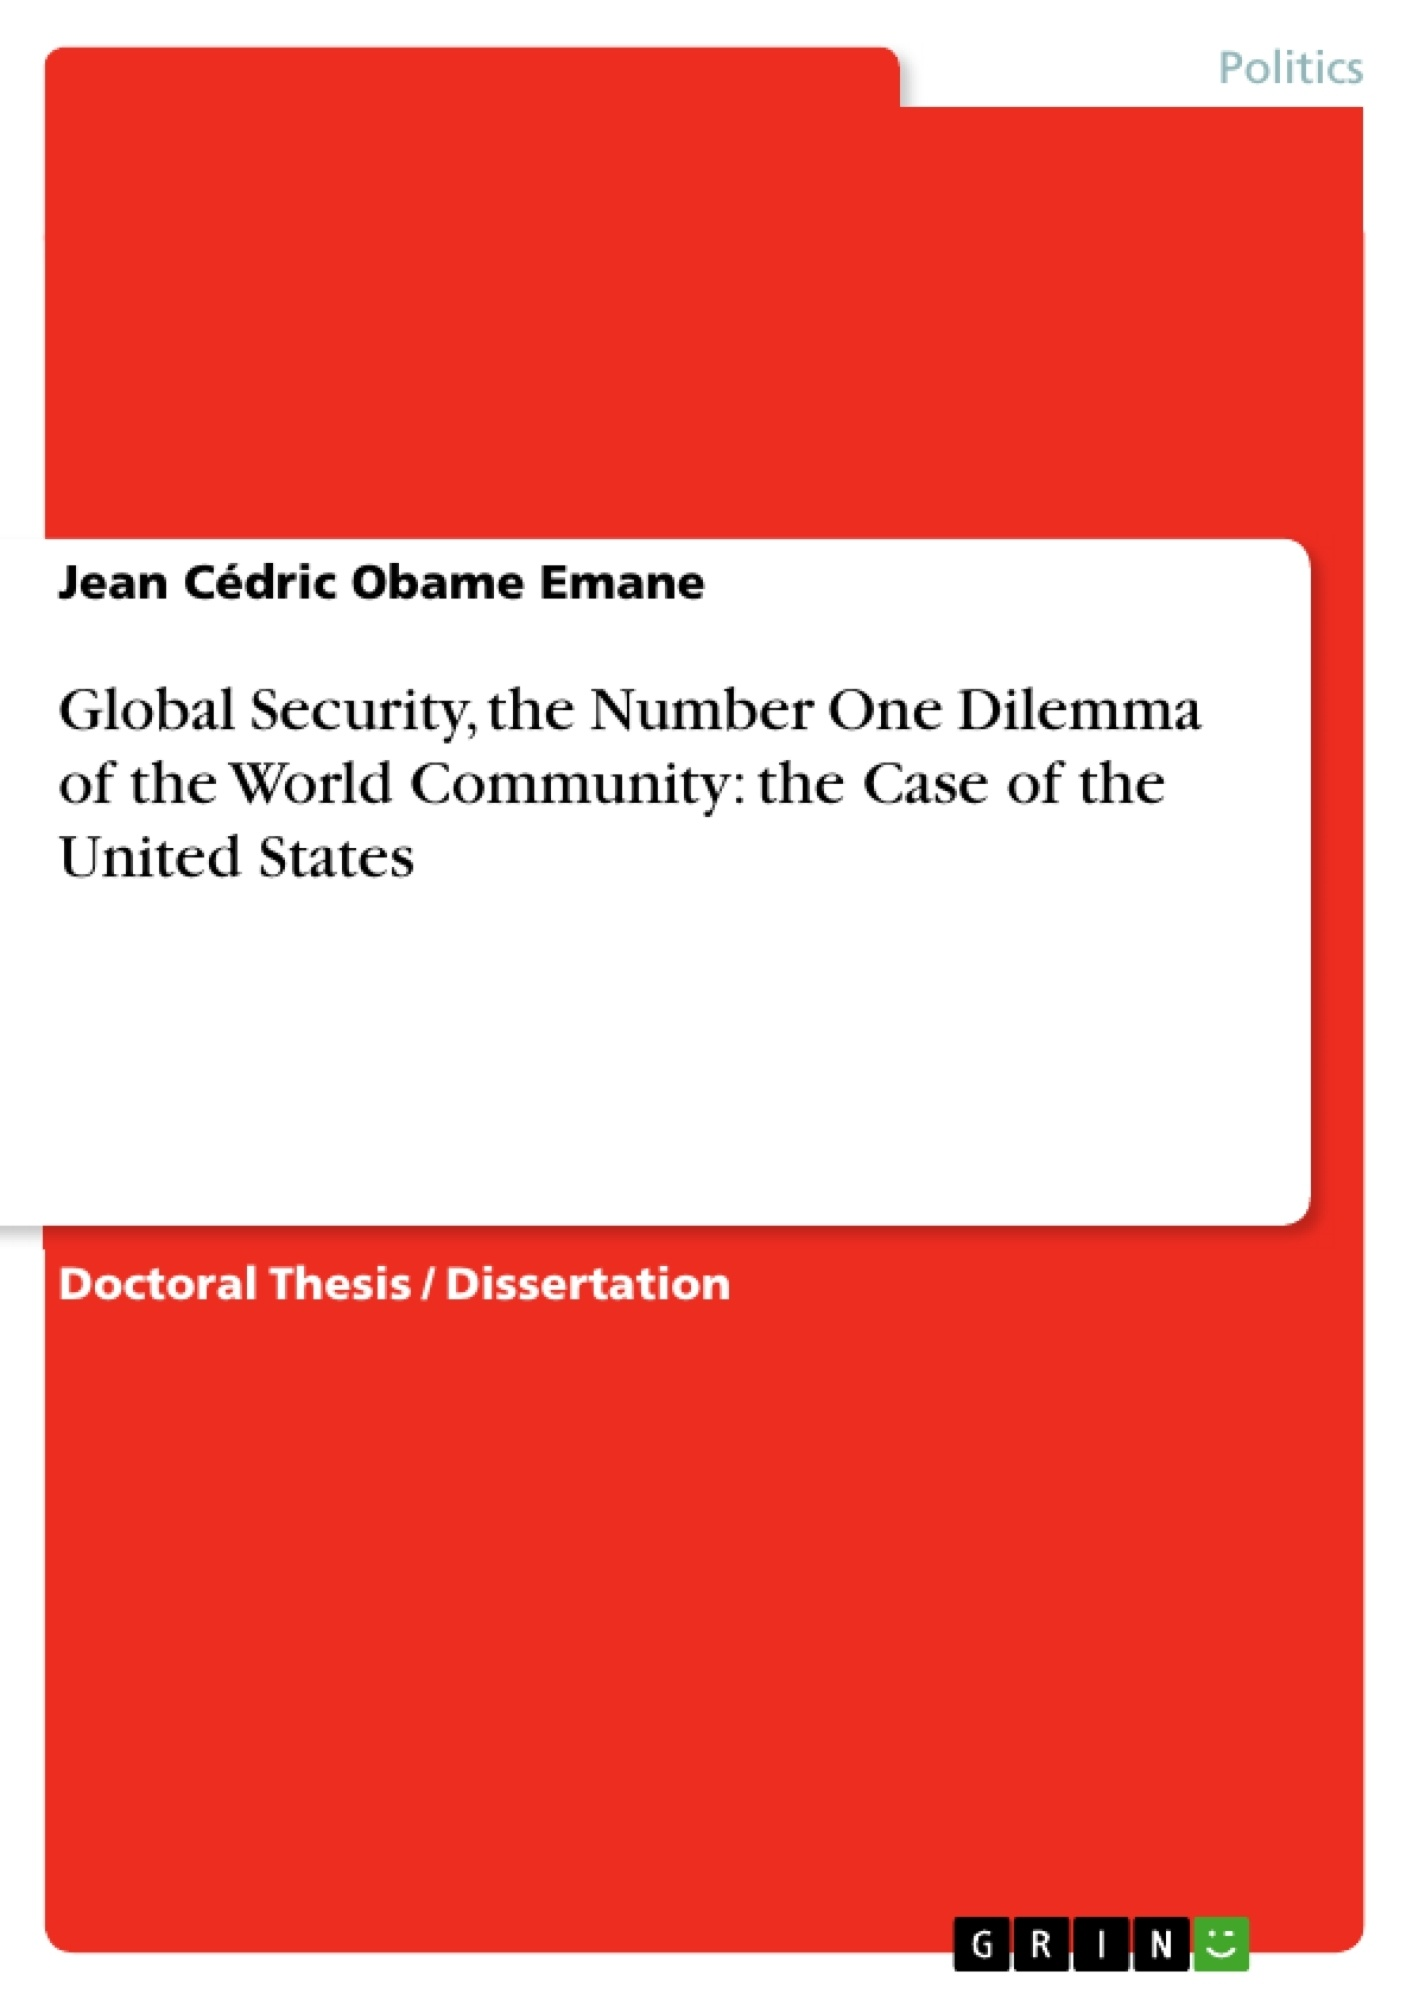 Title: Global Security, the Number One Dilemma of the World Community: the Case of the United States